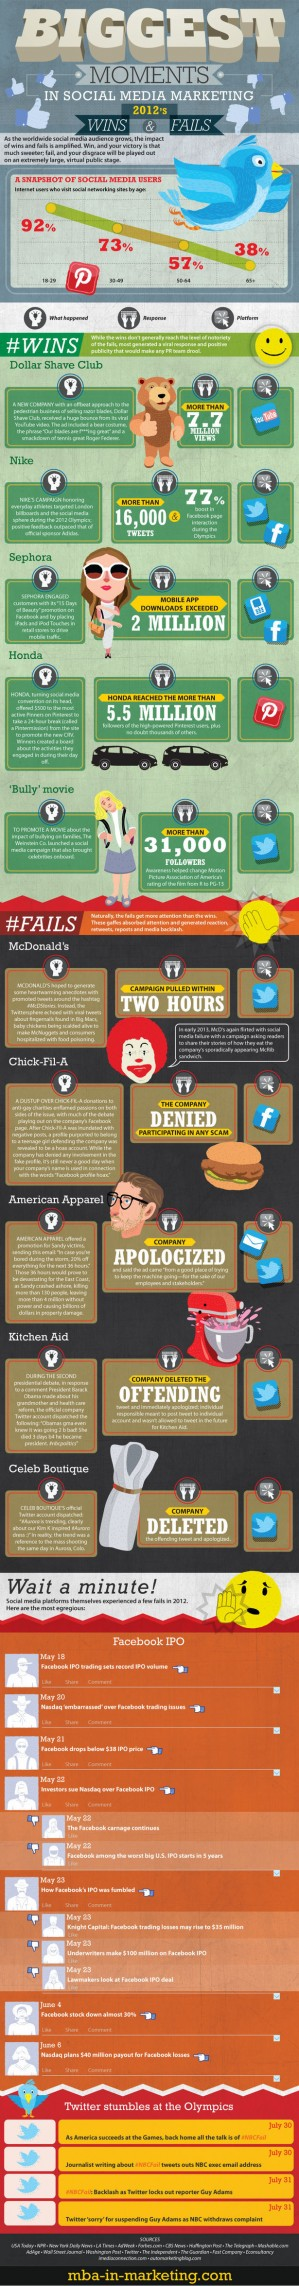 biggest moments in social media 2012 infographic